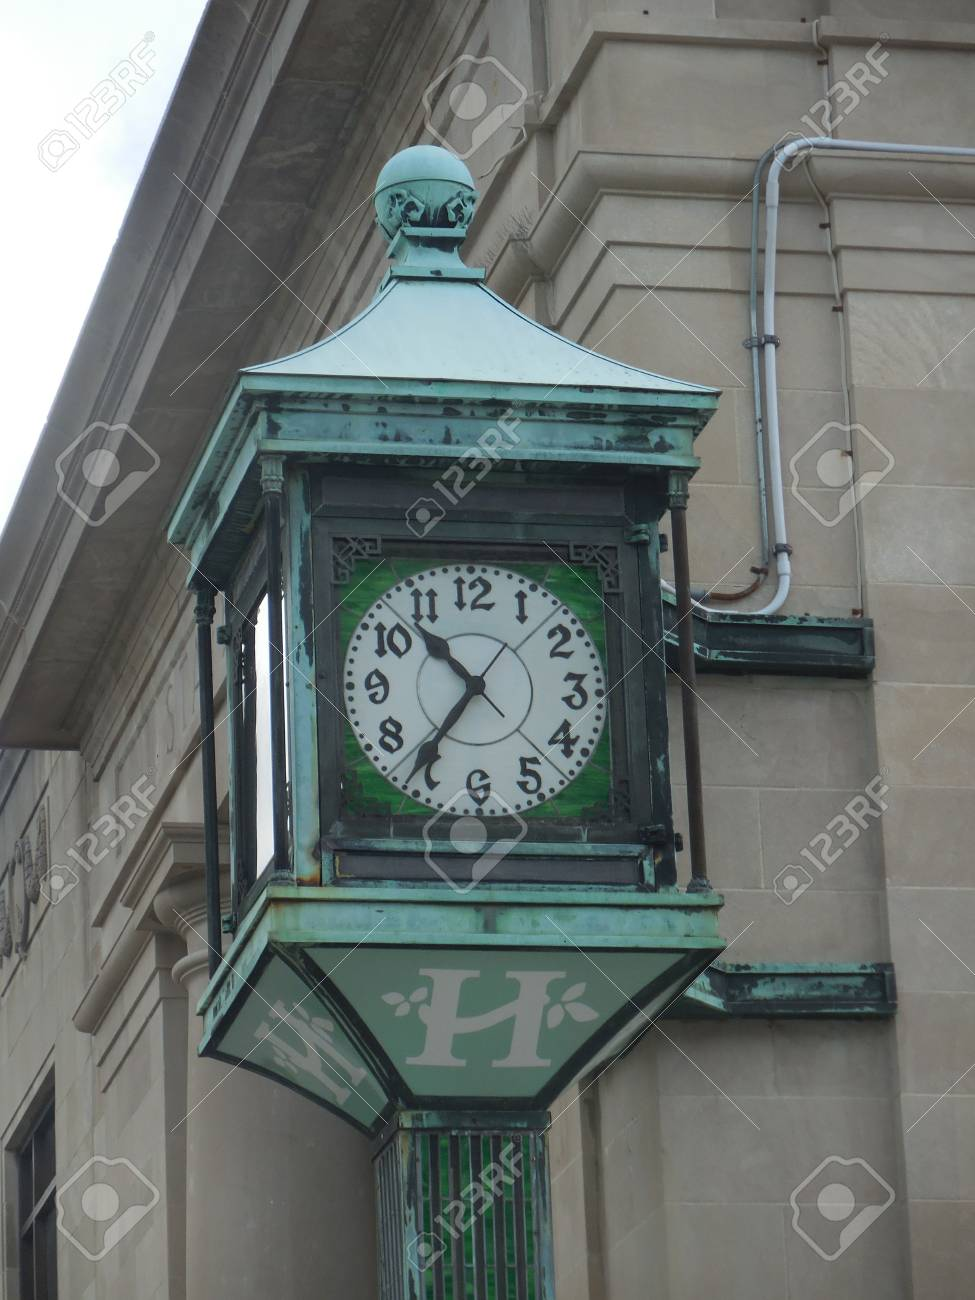 Old-fashioned clock Stock Photo - 88615853